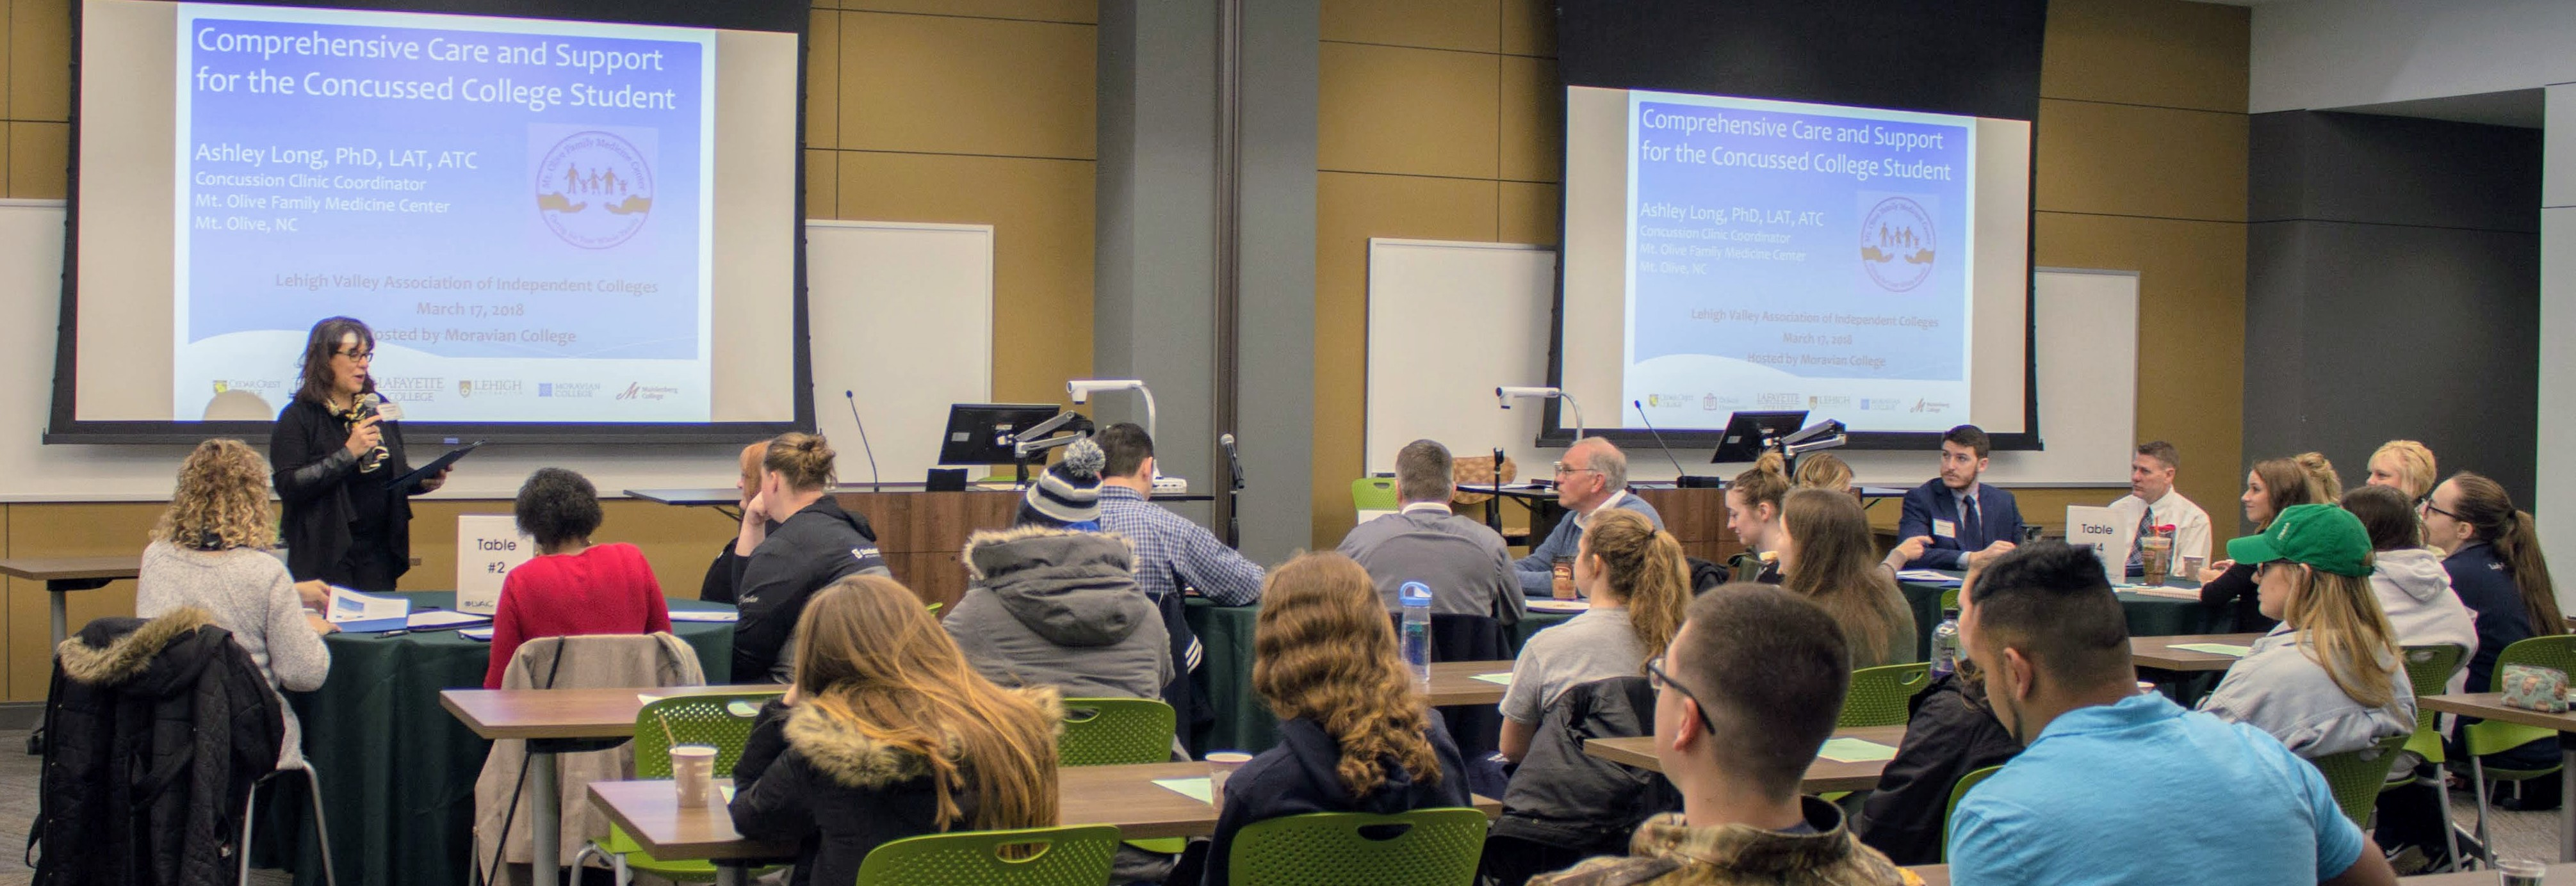 Barbara Ryan Hausman, Director of Academic & Accessibility Support, stands at the front of a large room. She is welcoming a group of students, faculty, and staff members who are sitting at tables in the room in front of her. A PowerPoint slide displaying the conference title, the Comprehensive Care and Support for the Concussed College Student conference, and the name of the presenter, Ashley Long, is projected onto two screens behind Barbara.